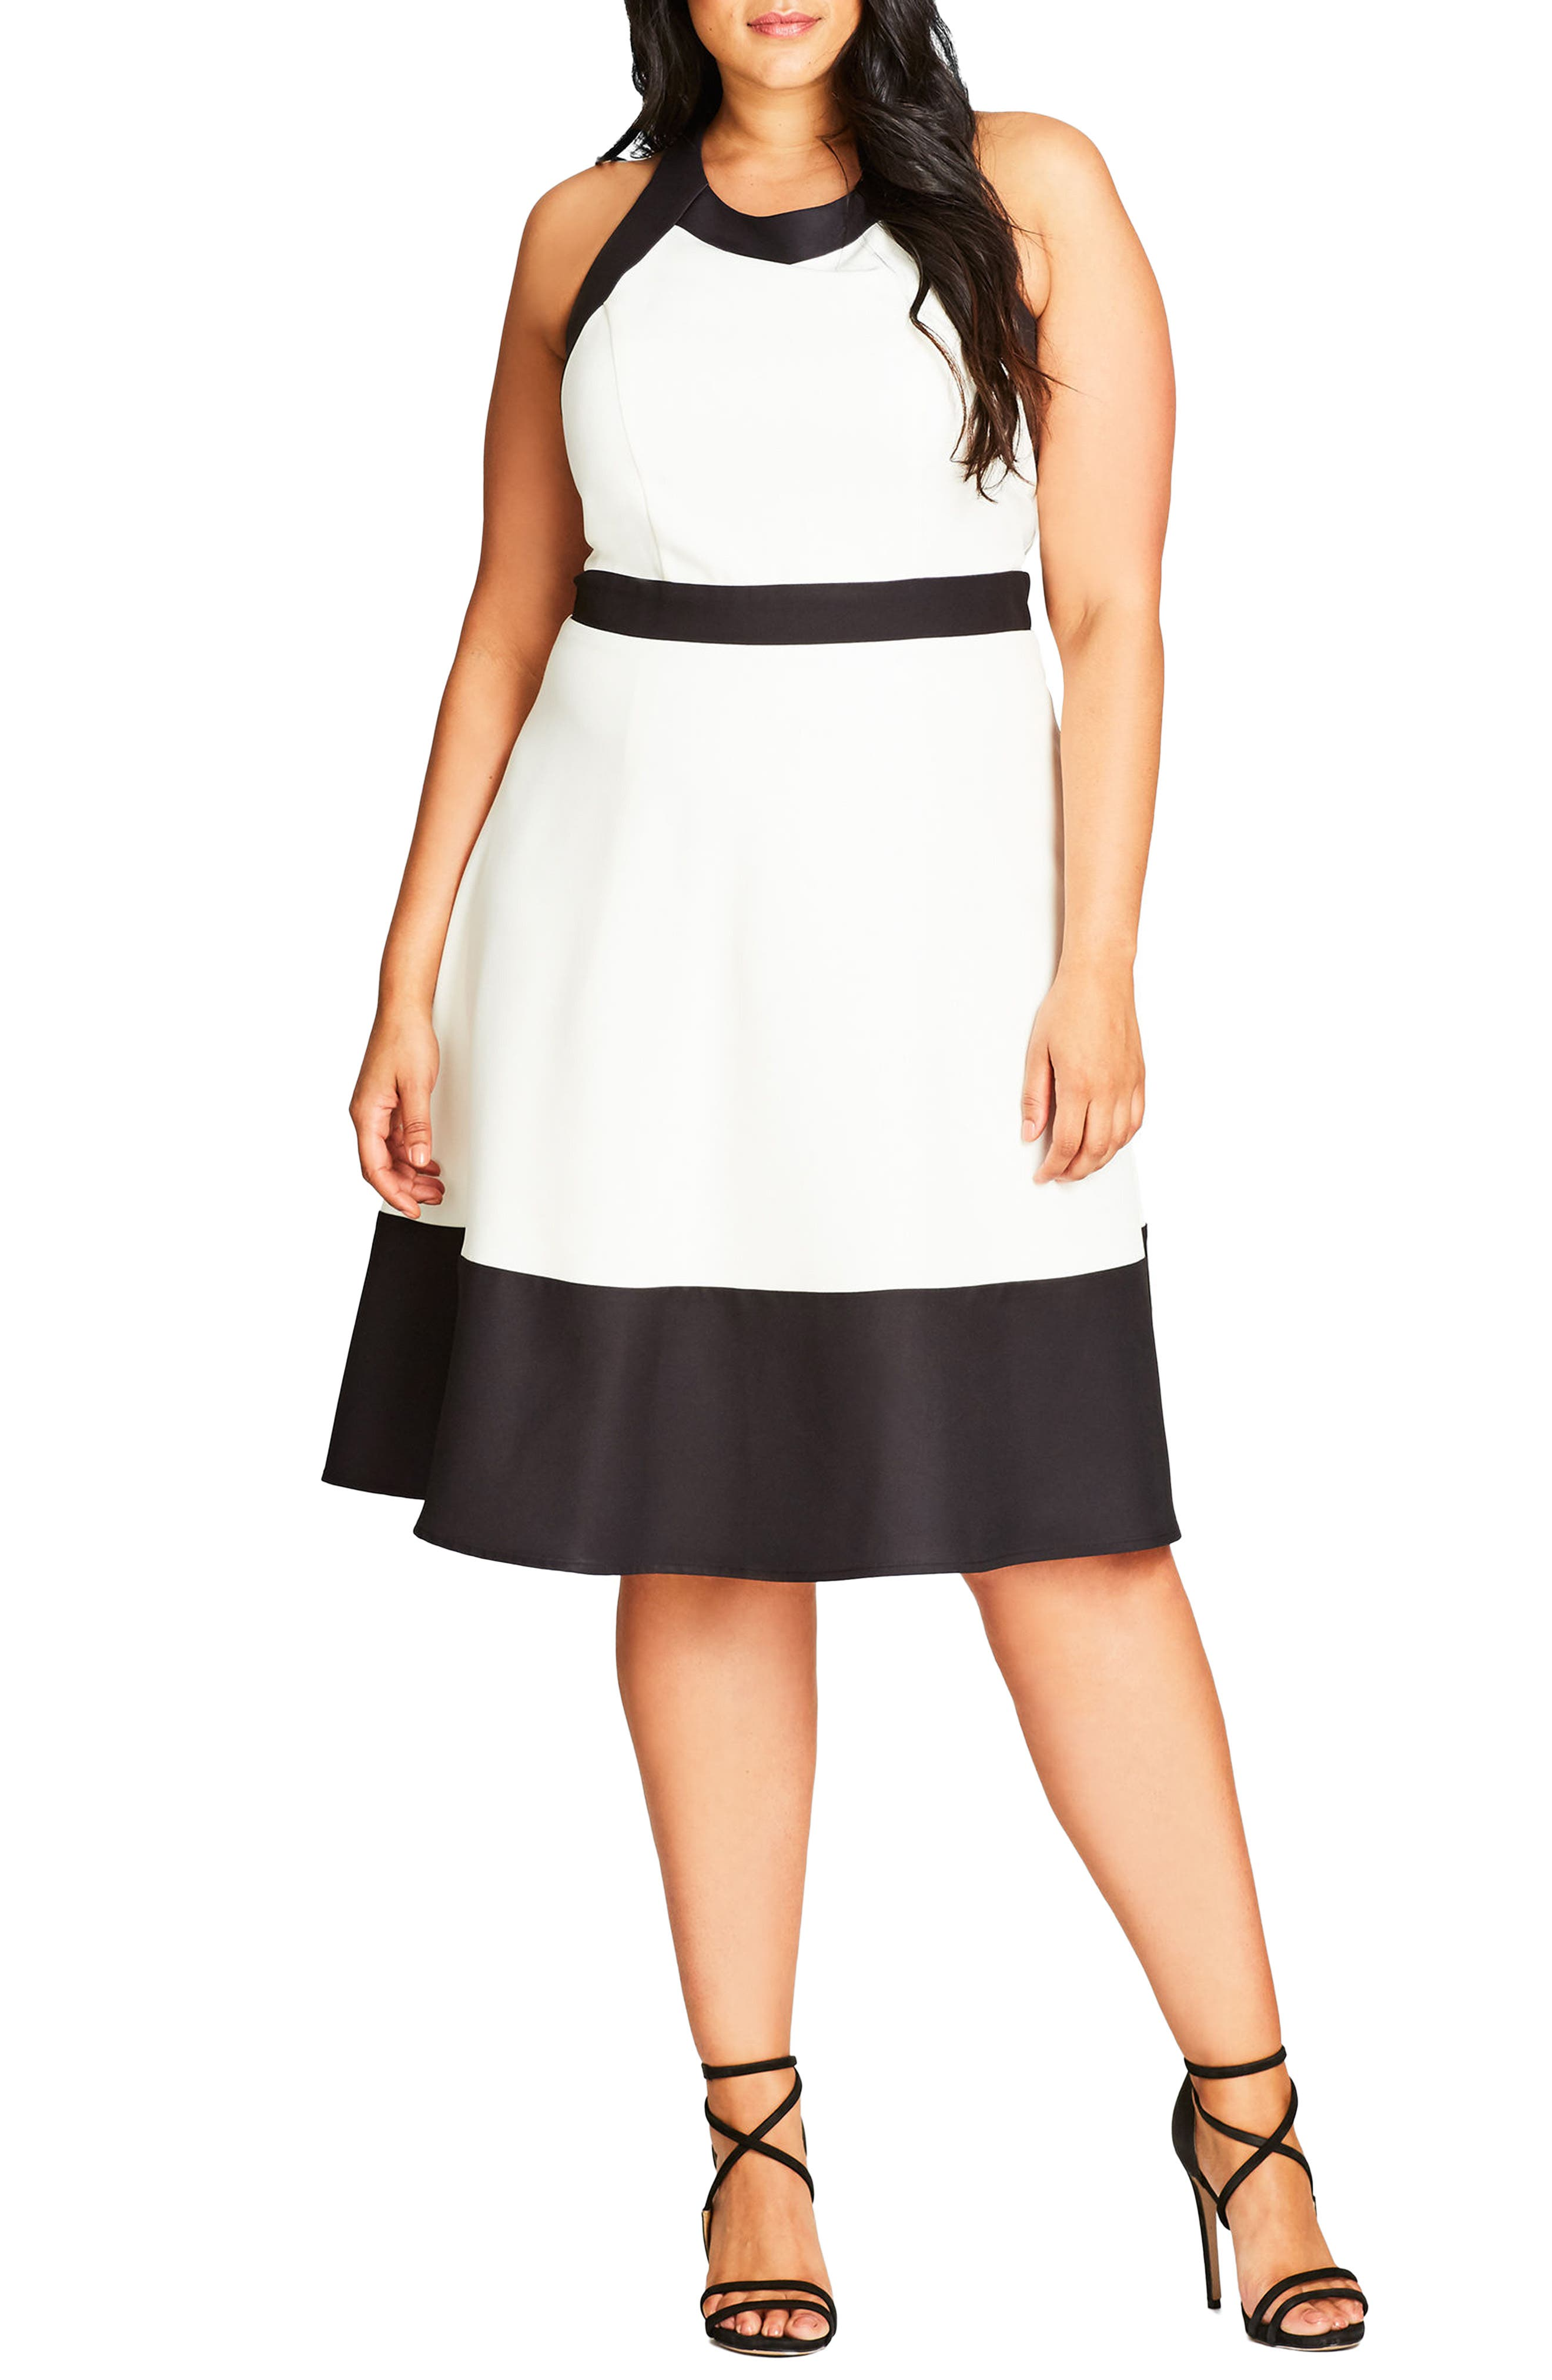 Alternate Image 1 Selected - City Chic Fit & Flare Dress (Plus Size)